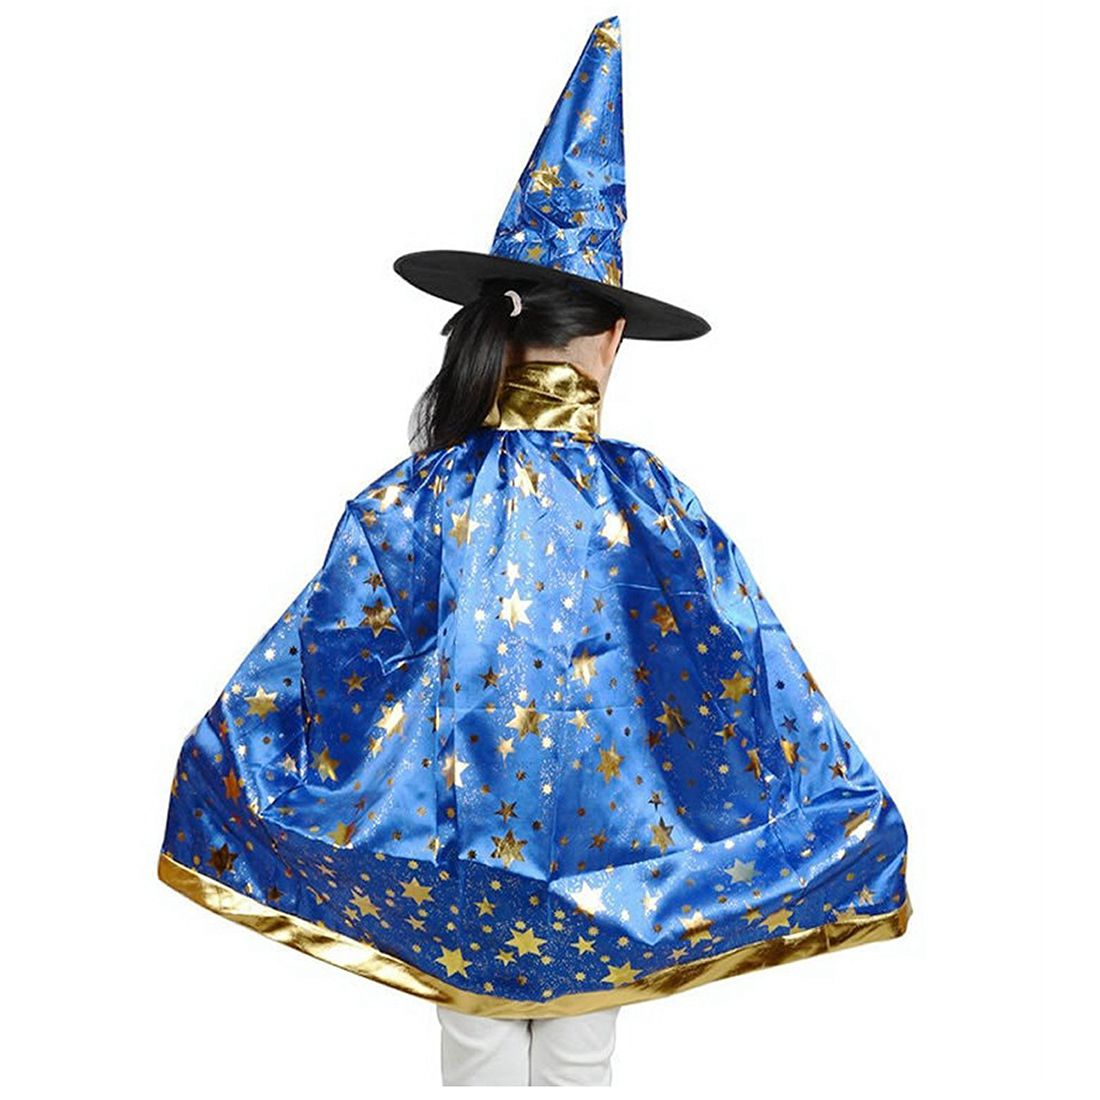 HOT SALE Halloween Costumes Witch Wizard Cloak with Hat for Kids Boys Girls  Black-in Clothing Sets from Mother   Kids on Aliexpress.com  4943d0202e50